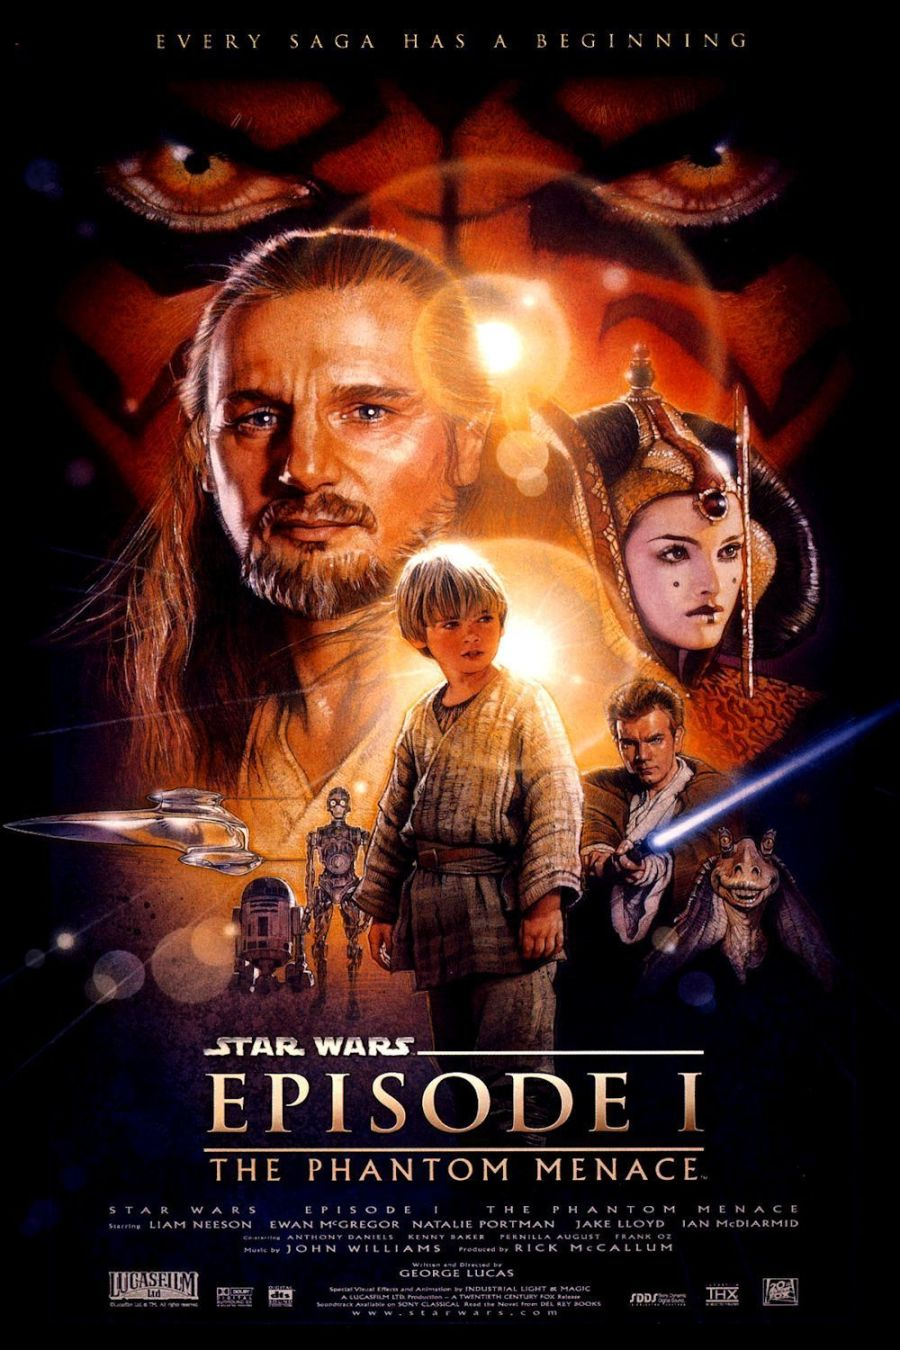 Episode I The Phantom Menace poster